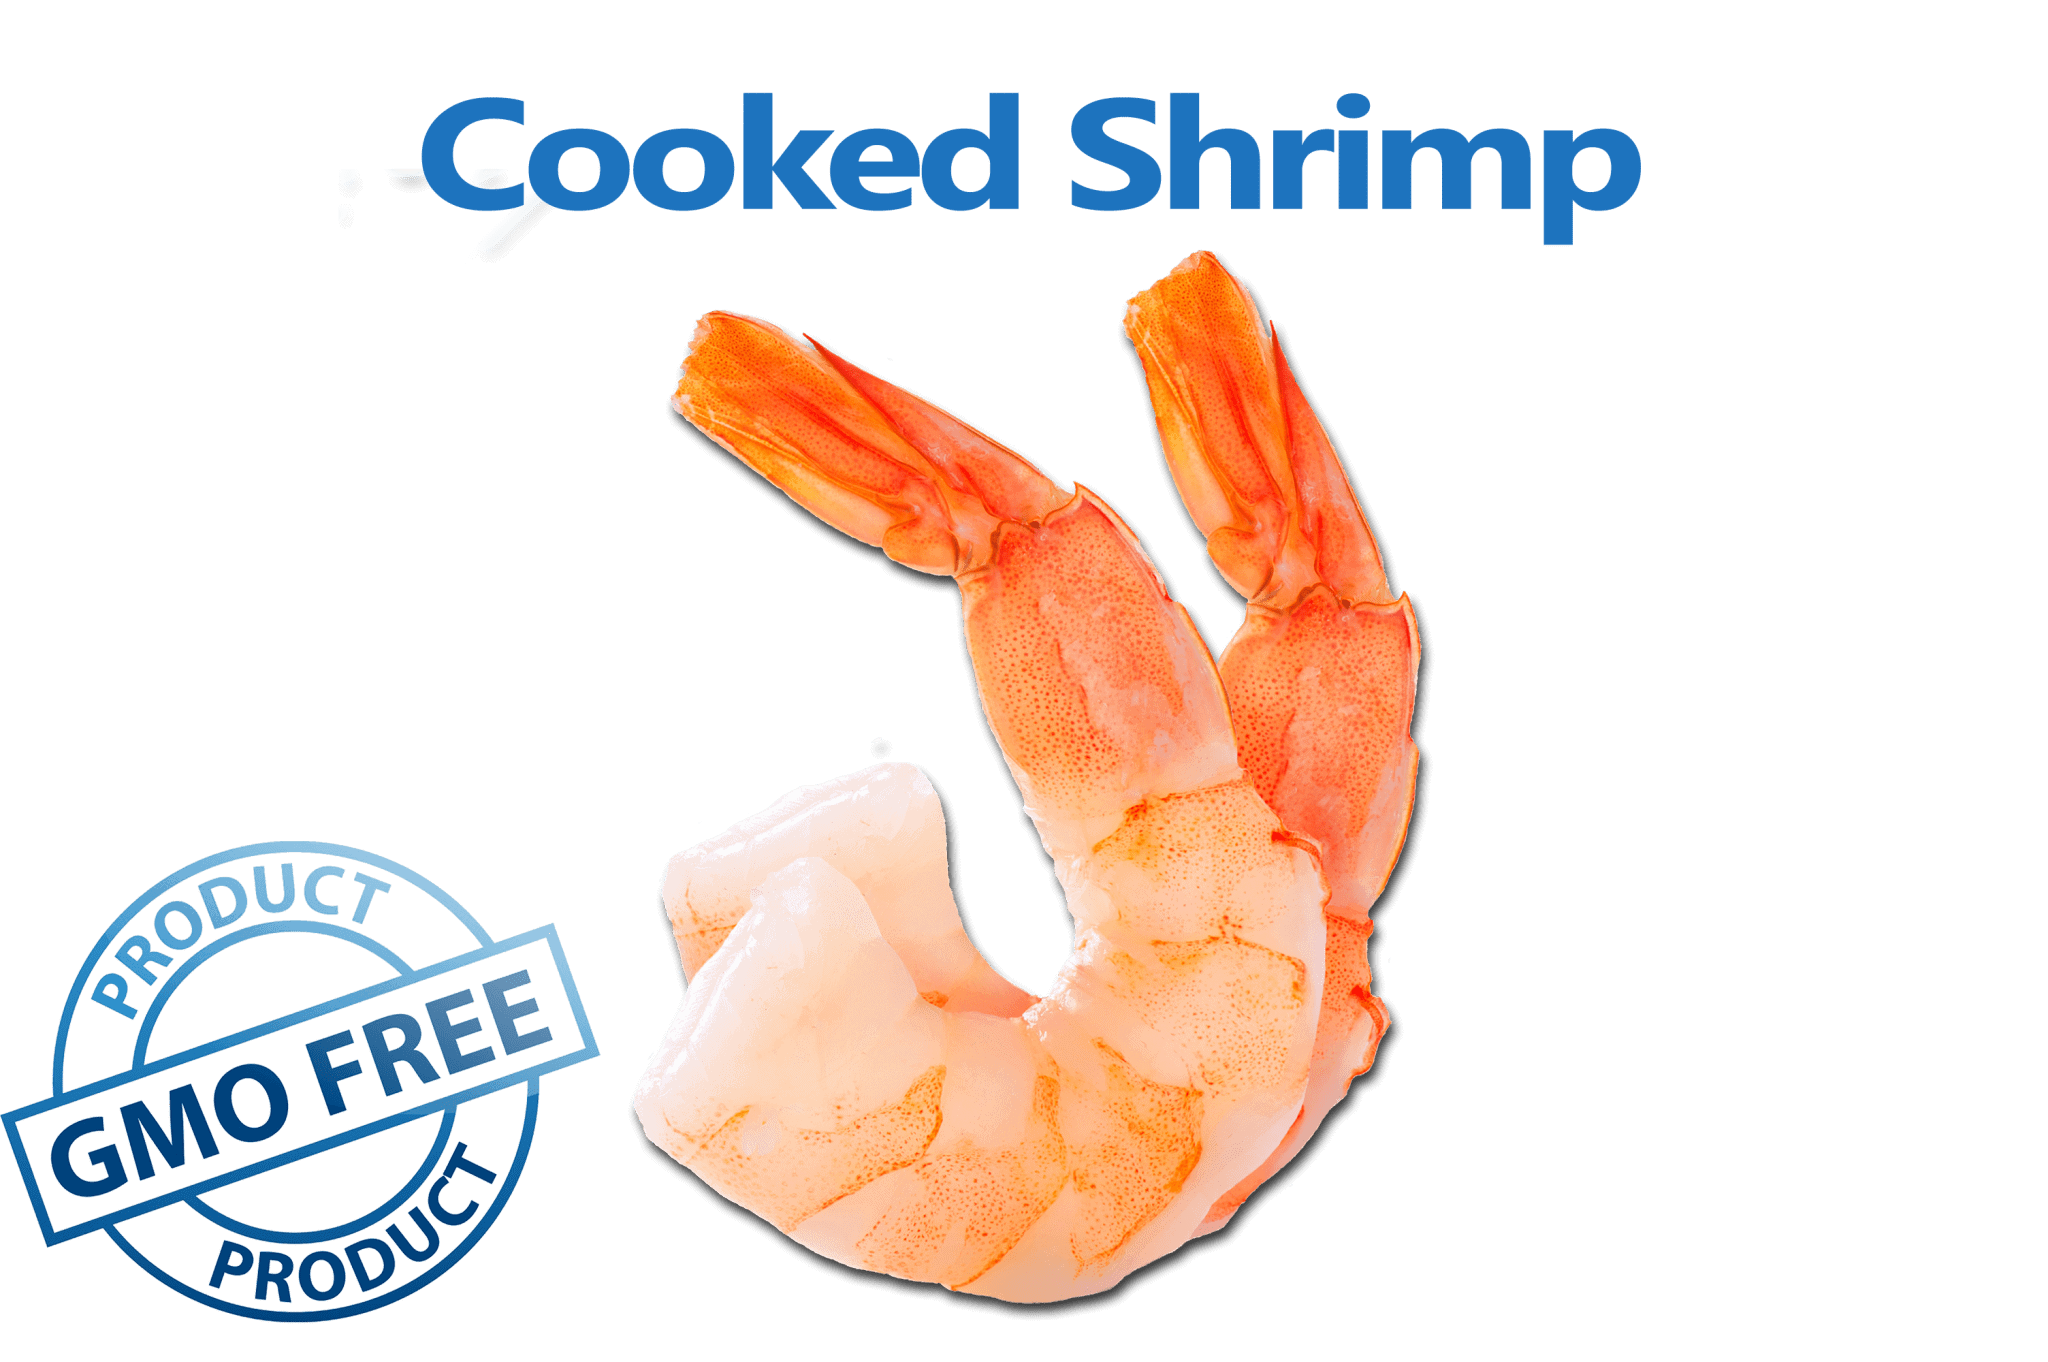 Great Tasting Cooked Shrimp From The American Company